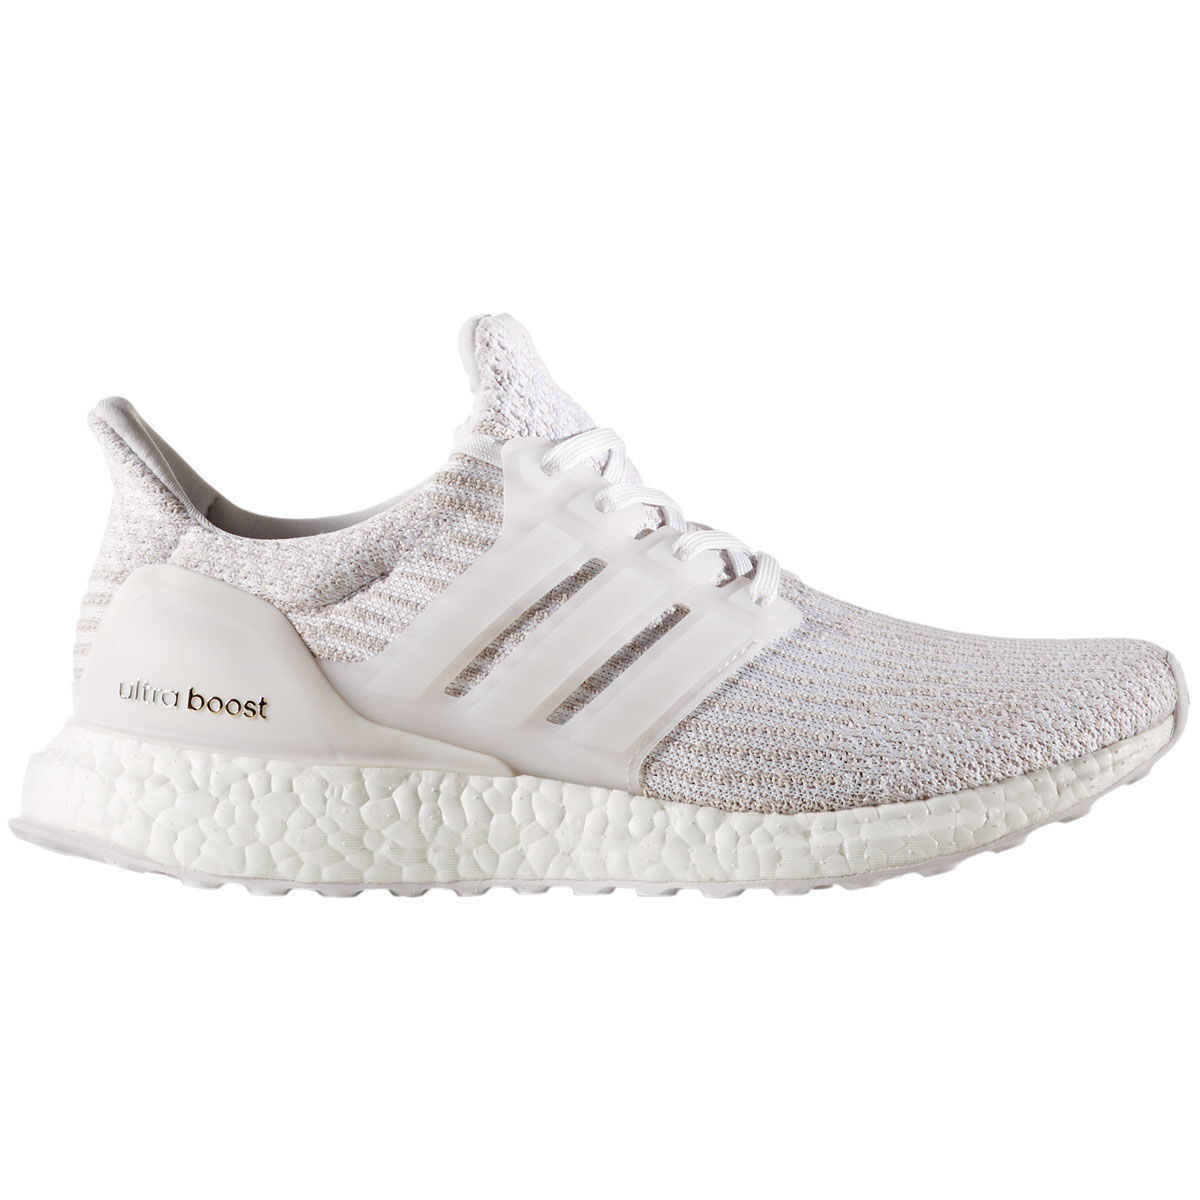 adidas ultra boost damen weiß 38